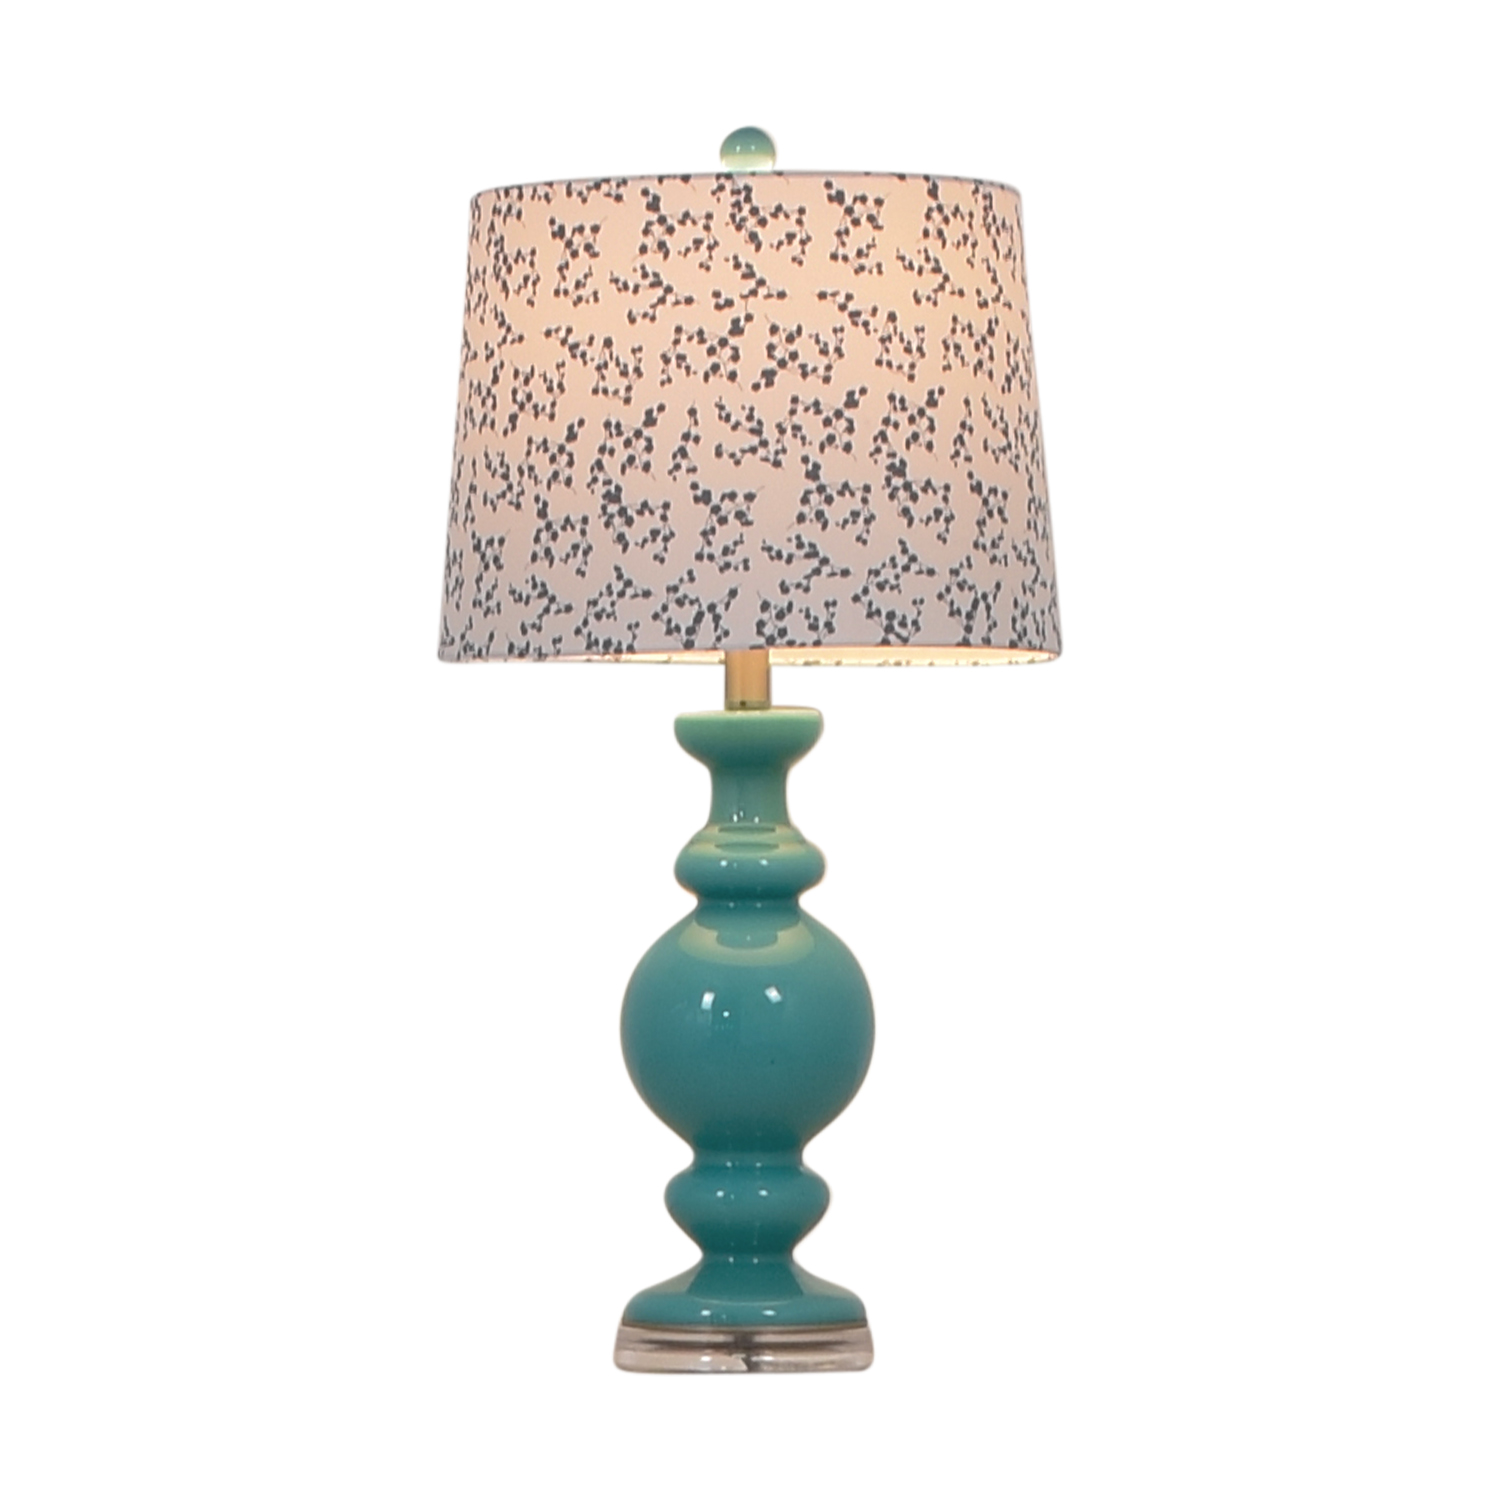 Green Lamp with Printed Shade Lamps